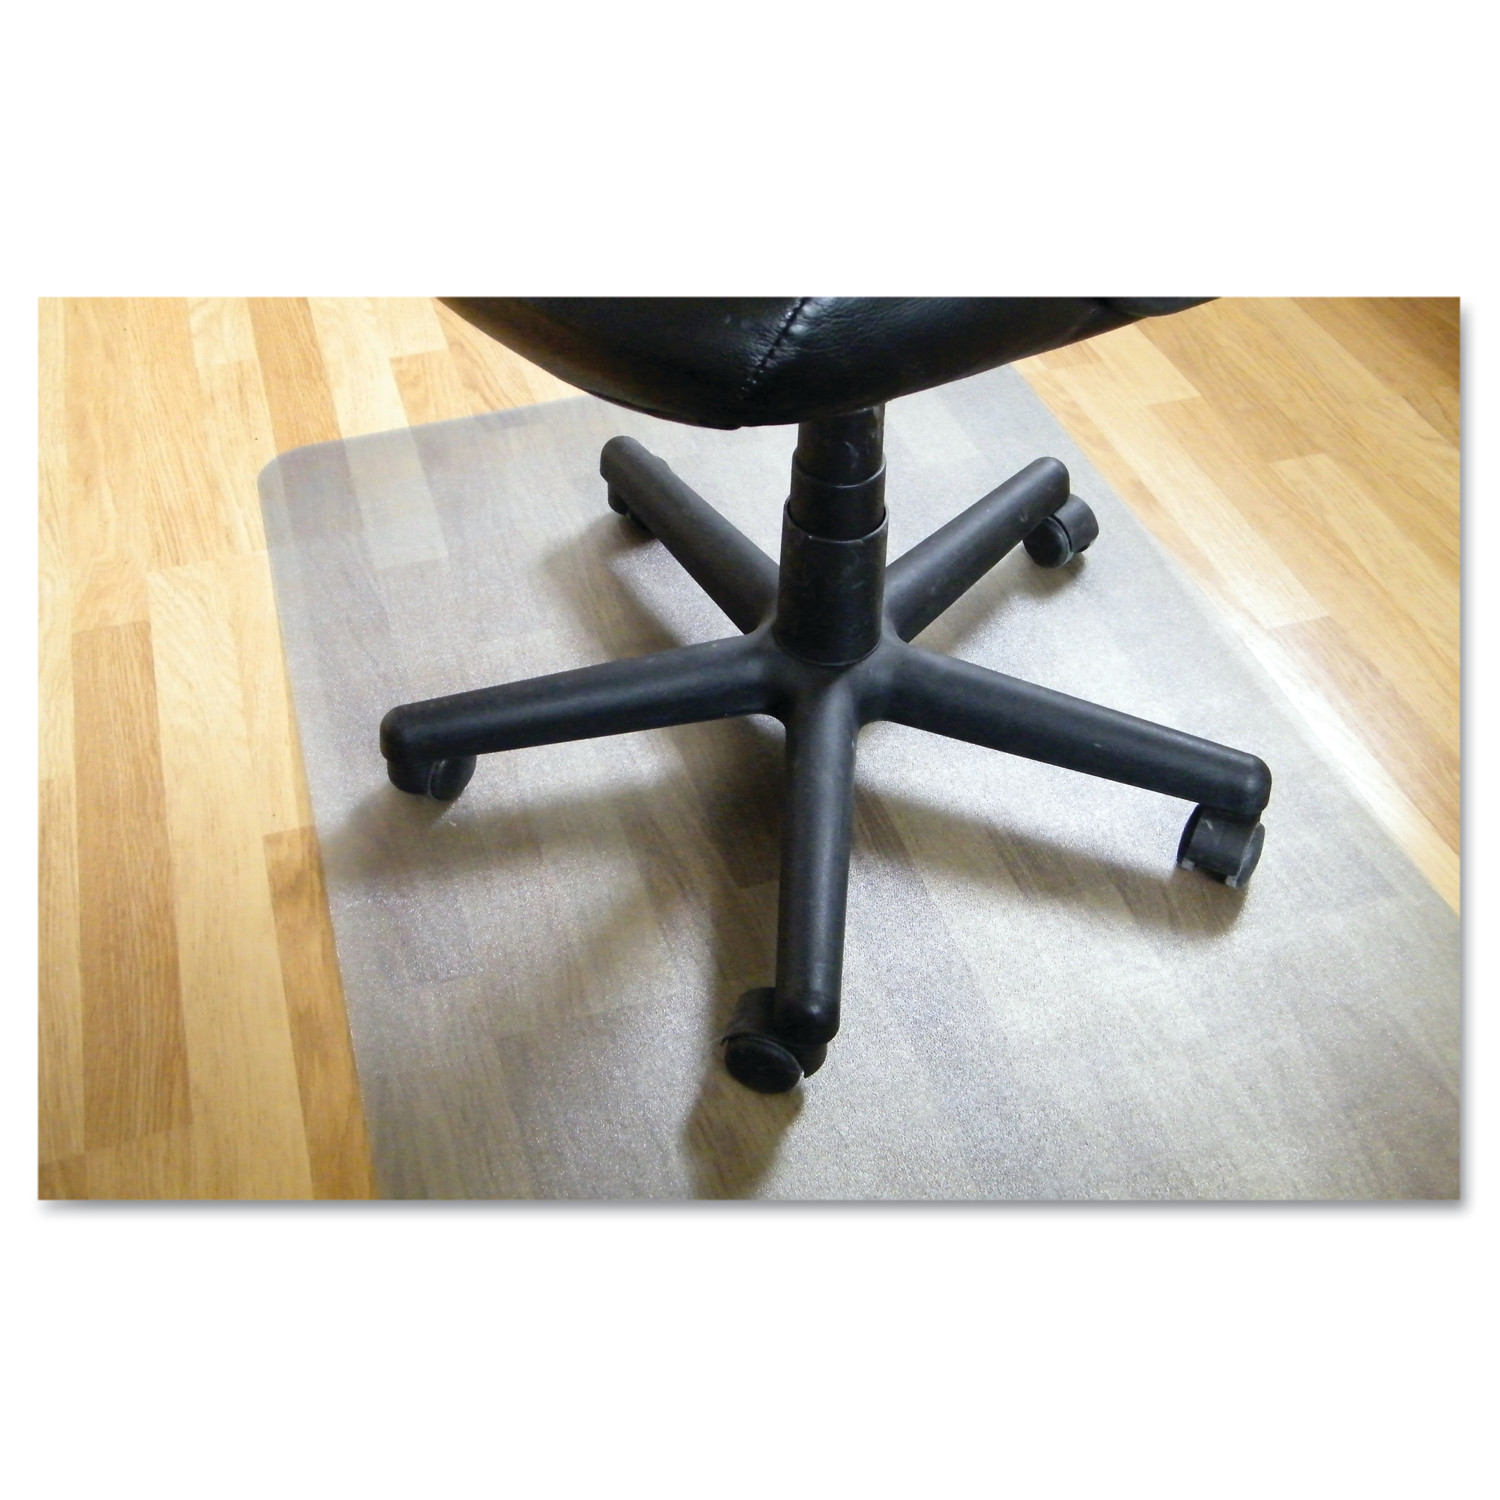 "EcoTex Revolutionmat | Recycled Chair Mat | For Hard Floors | 100% Recycled | Rectangular | Size 48"" x 60"""